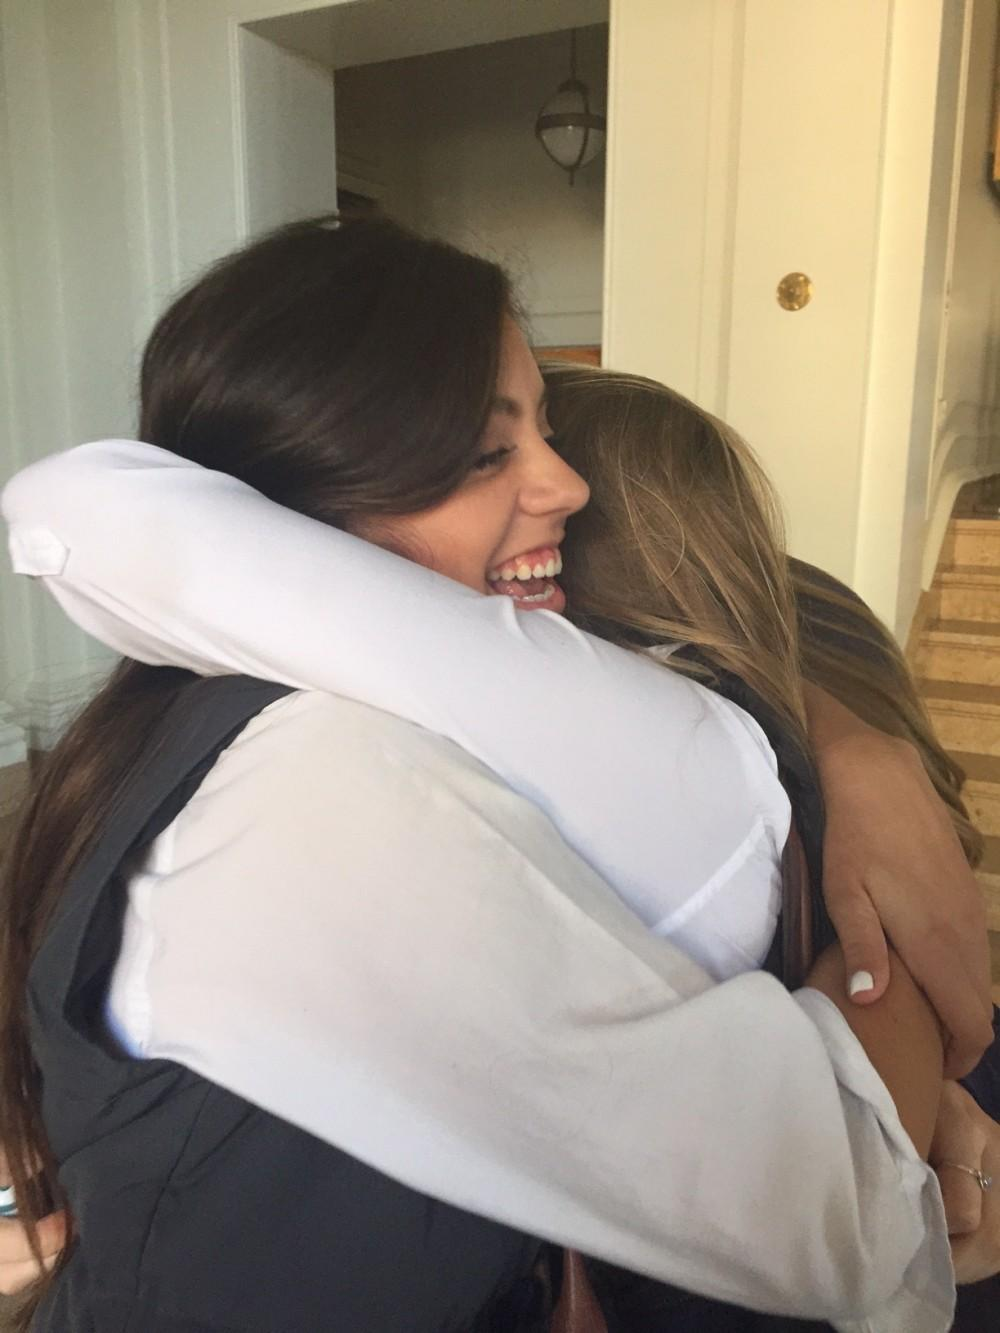 Sophomore Agustina Huneeus (left) hugs classmate Jocelyn Shilakes (right) goodbye last Friday in the Main Hall. Friday was Huneeus' last day at school before leaving for Barcelona.